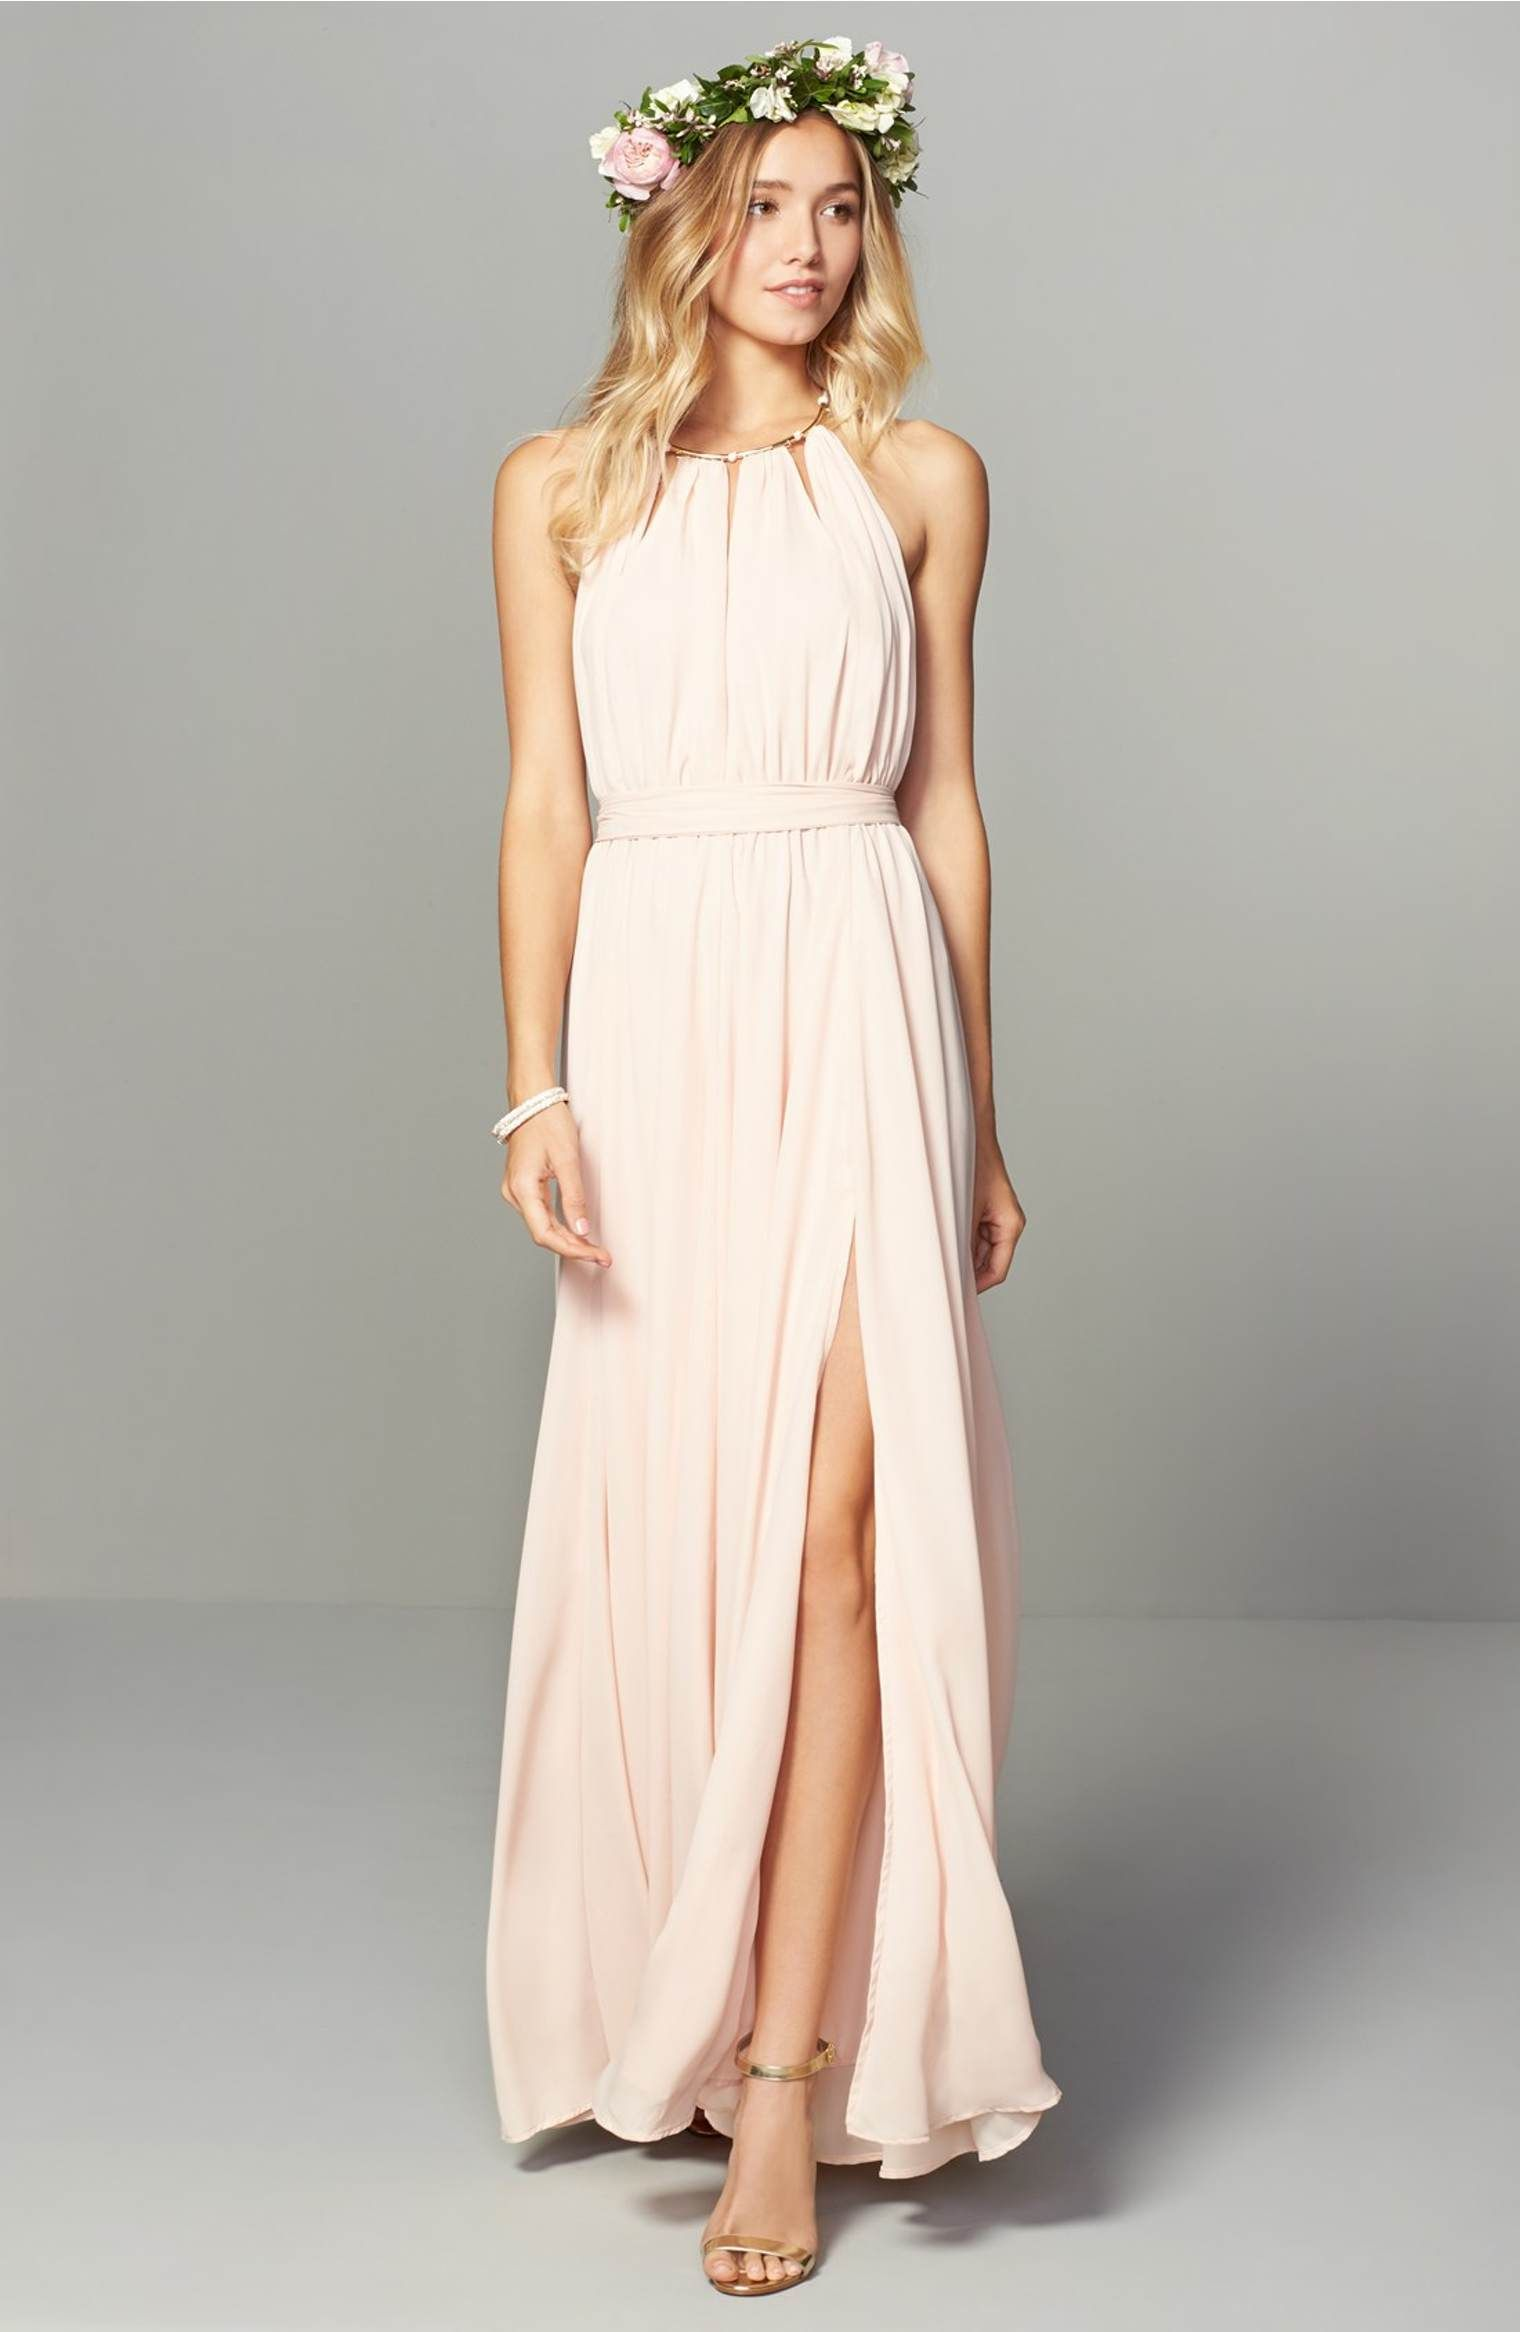 Main image lulus gold metallic halter neck chiffon gown